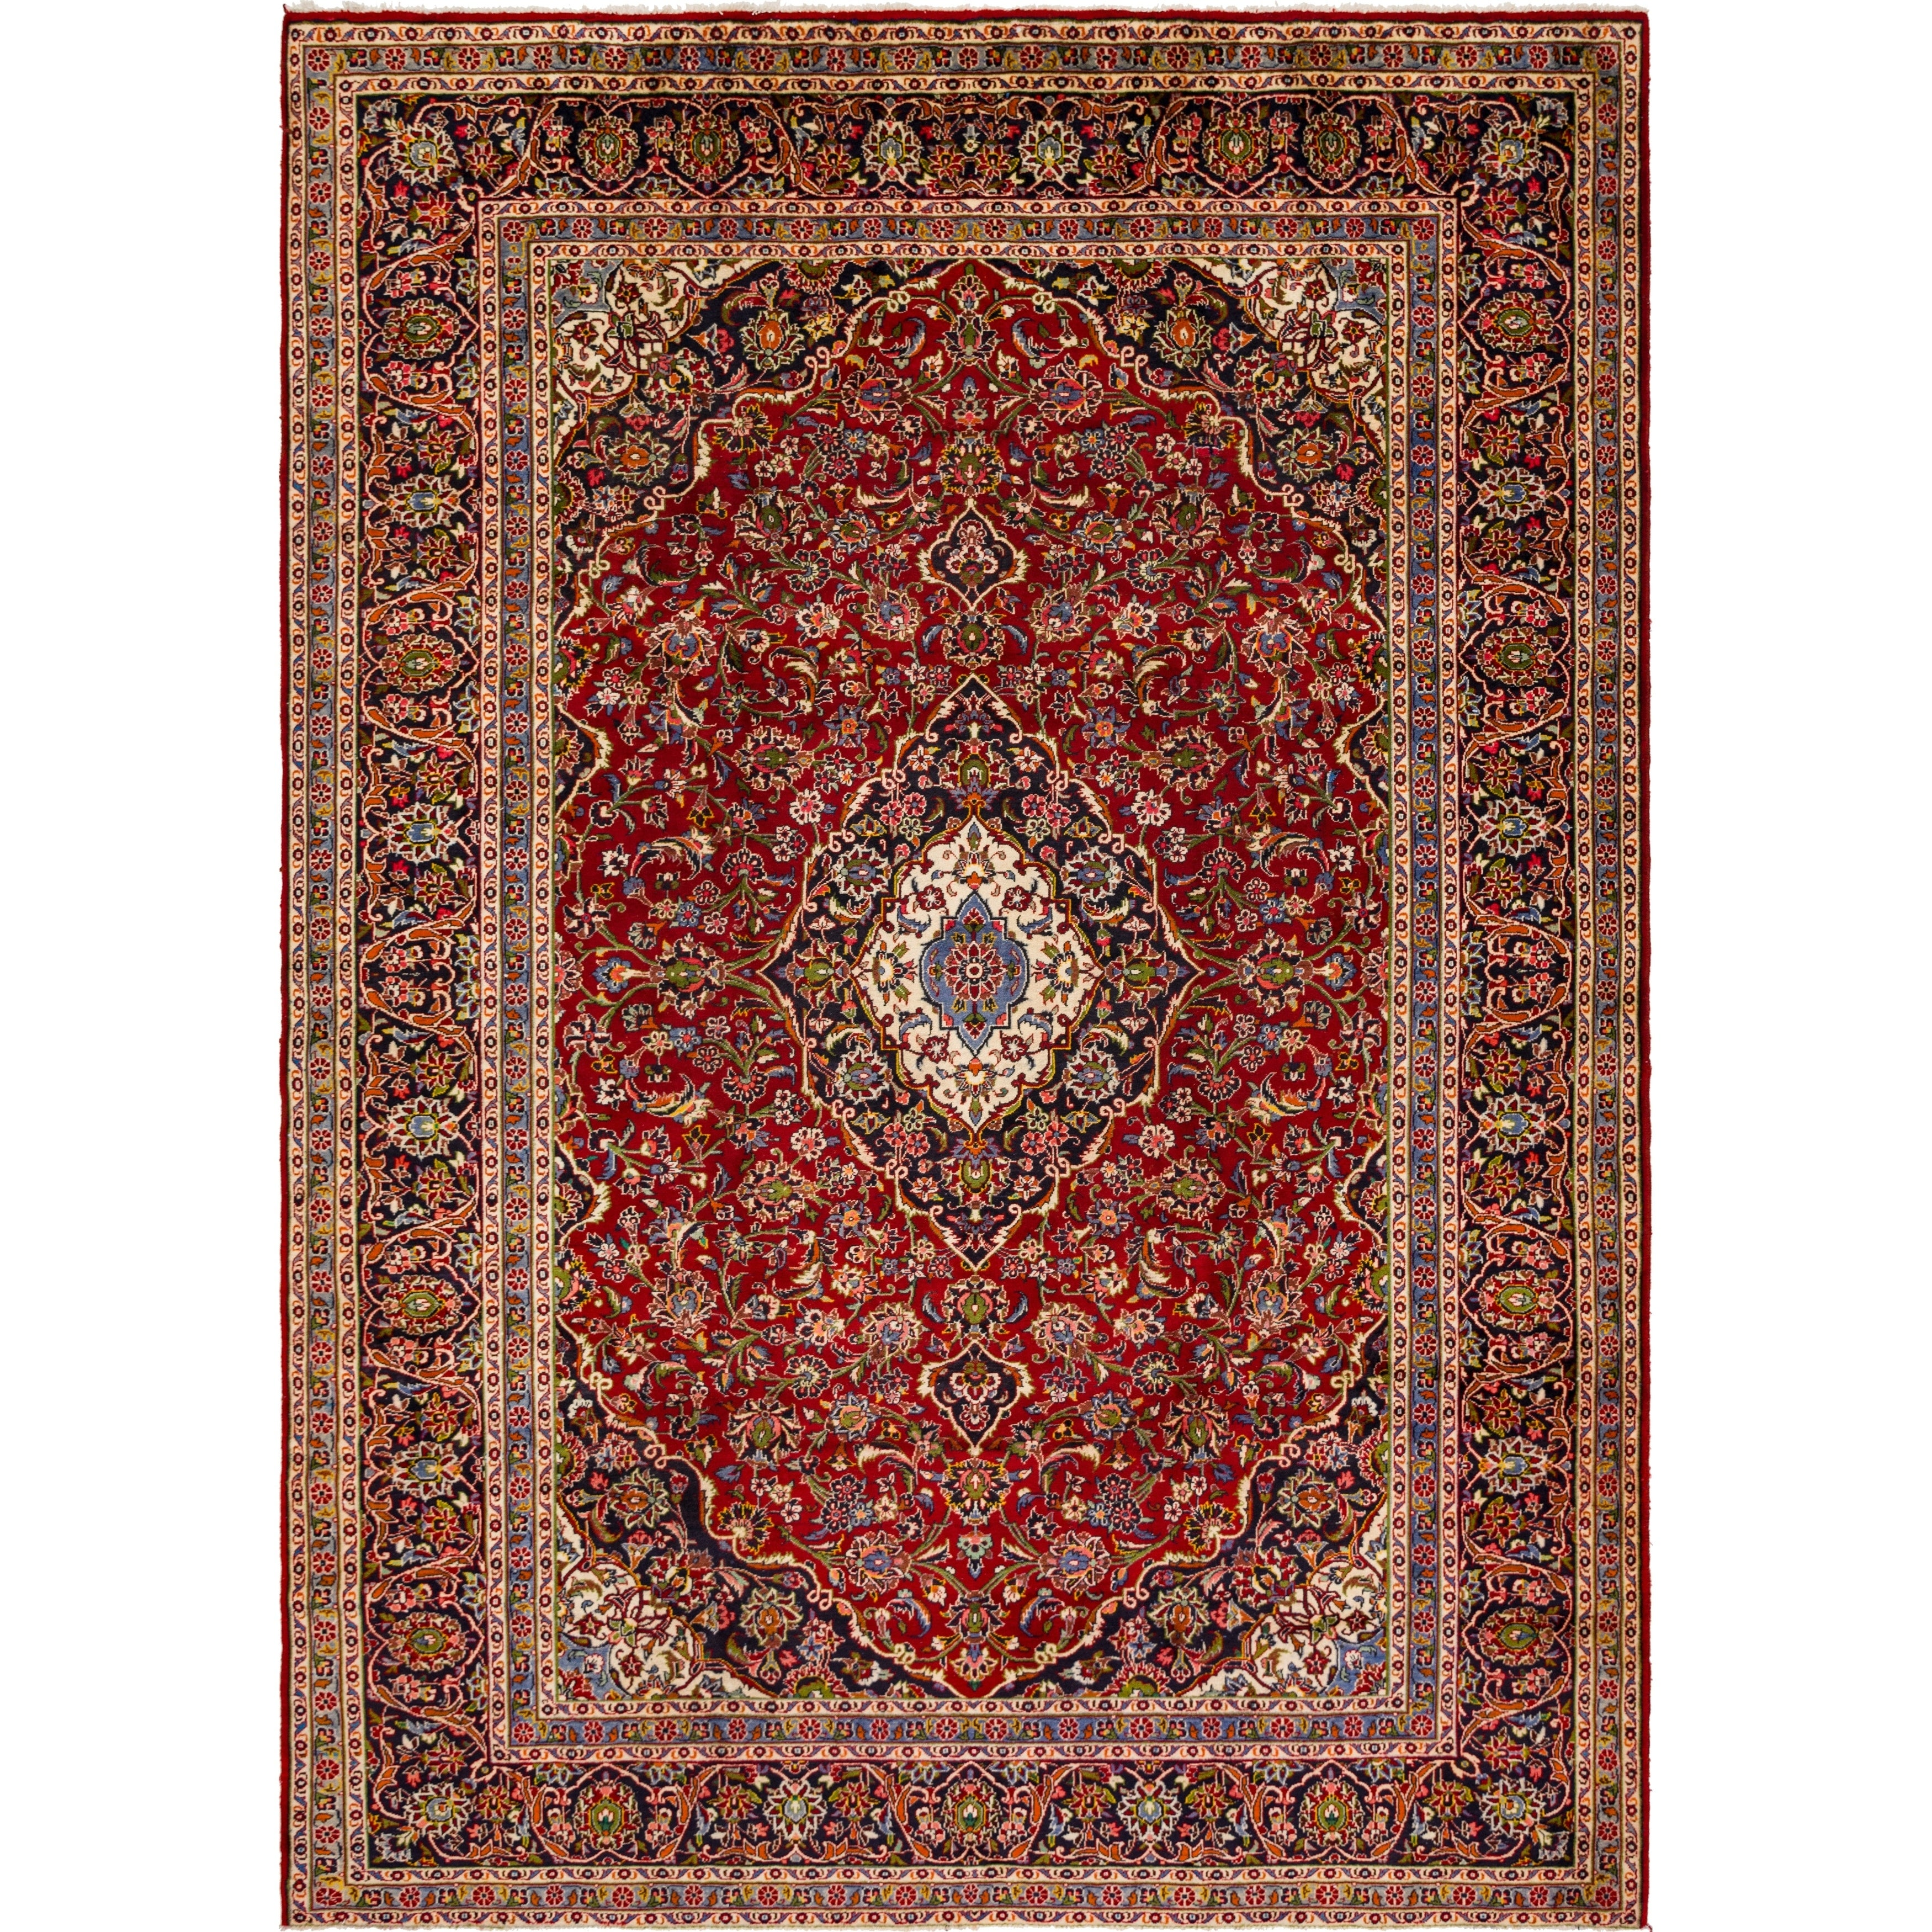 Hand Knotted Kashan Semi Antique Wool Area Rug - 9 10 x 13 5 (Red - 9 10 x 13 5)